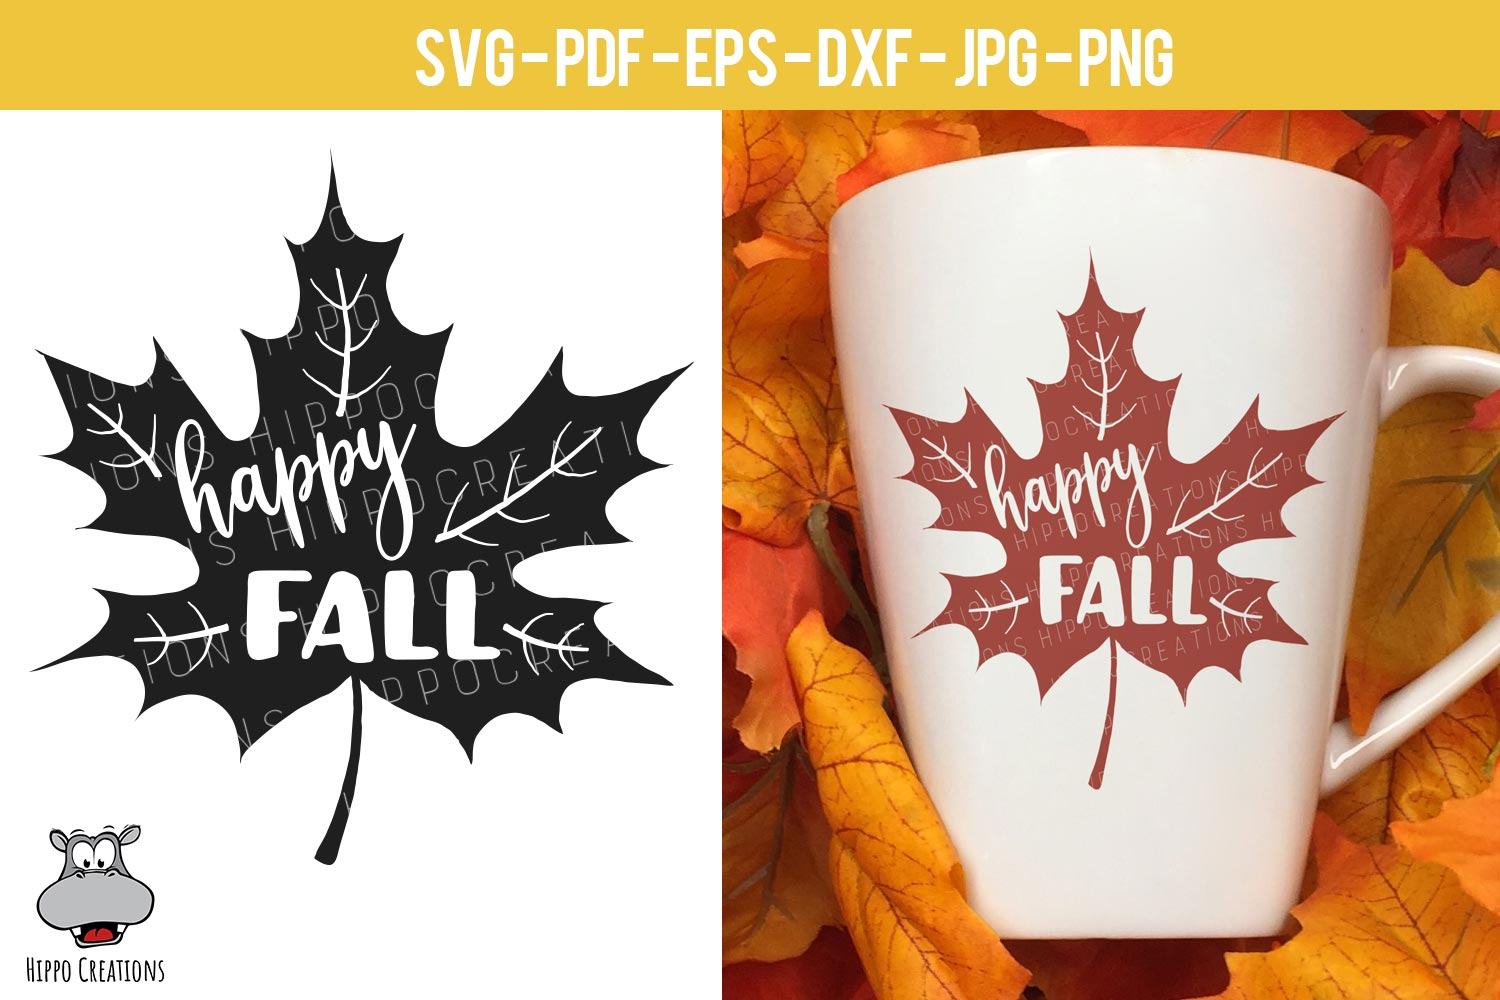 Fall Bundle SVG, Autumn Bundle, Thanksgiving, EPS DXF PNG example image 3